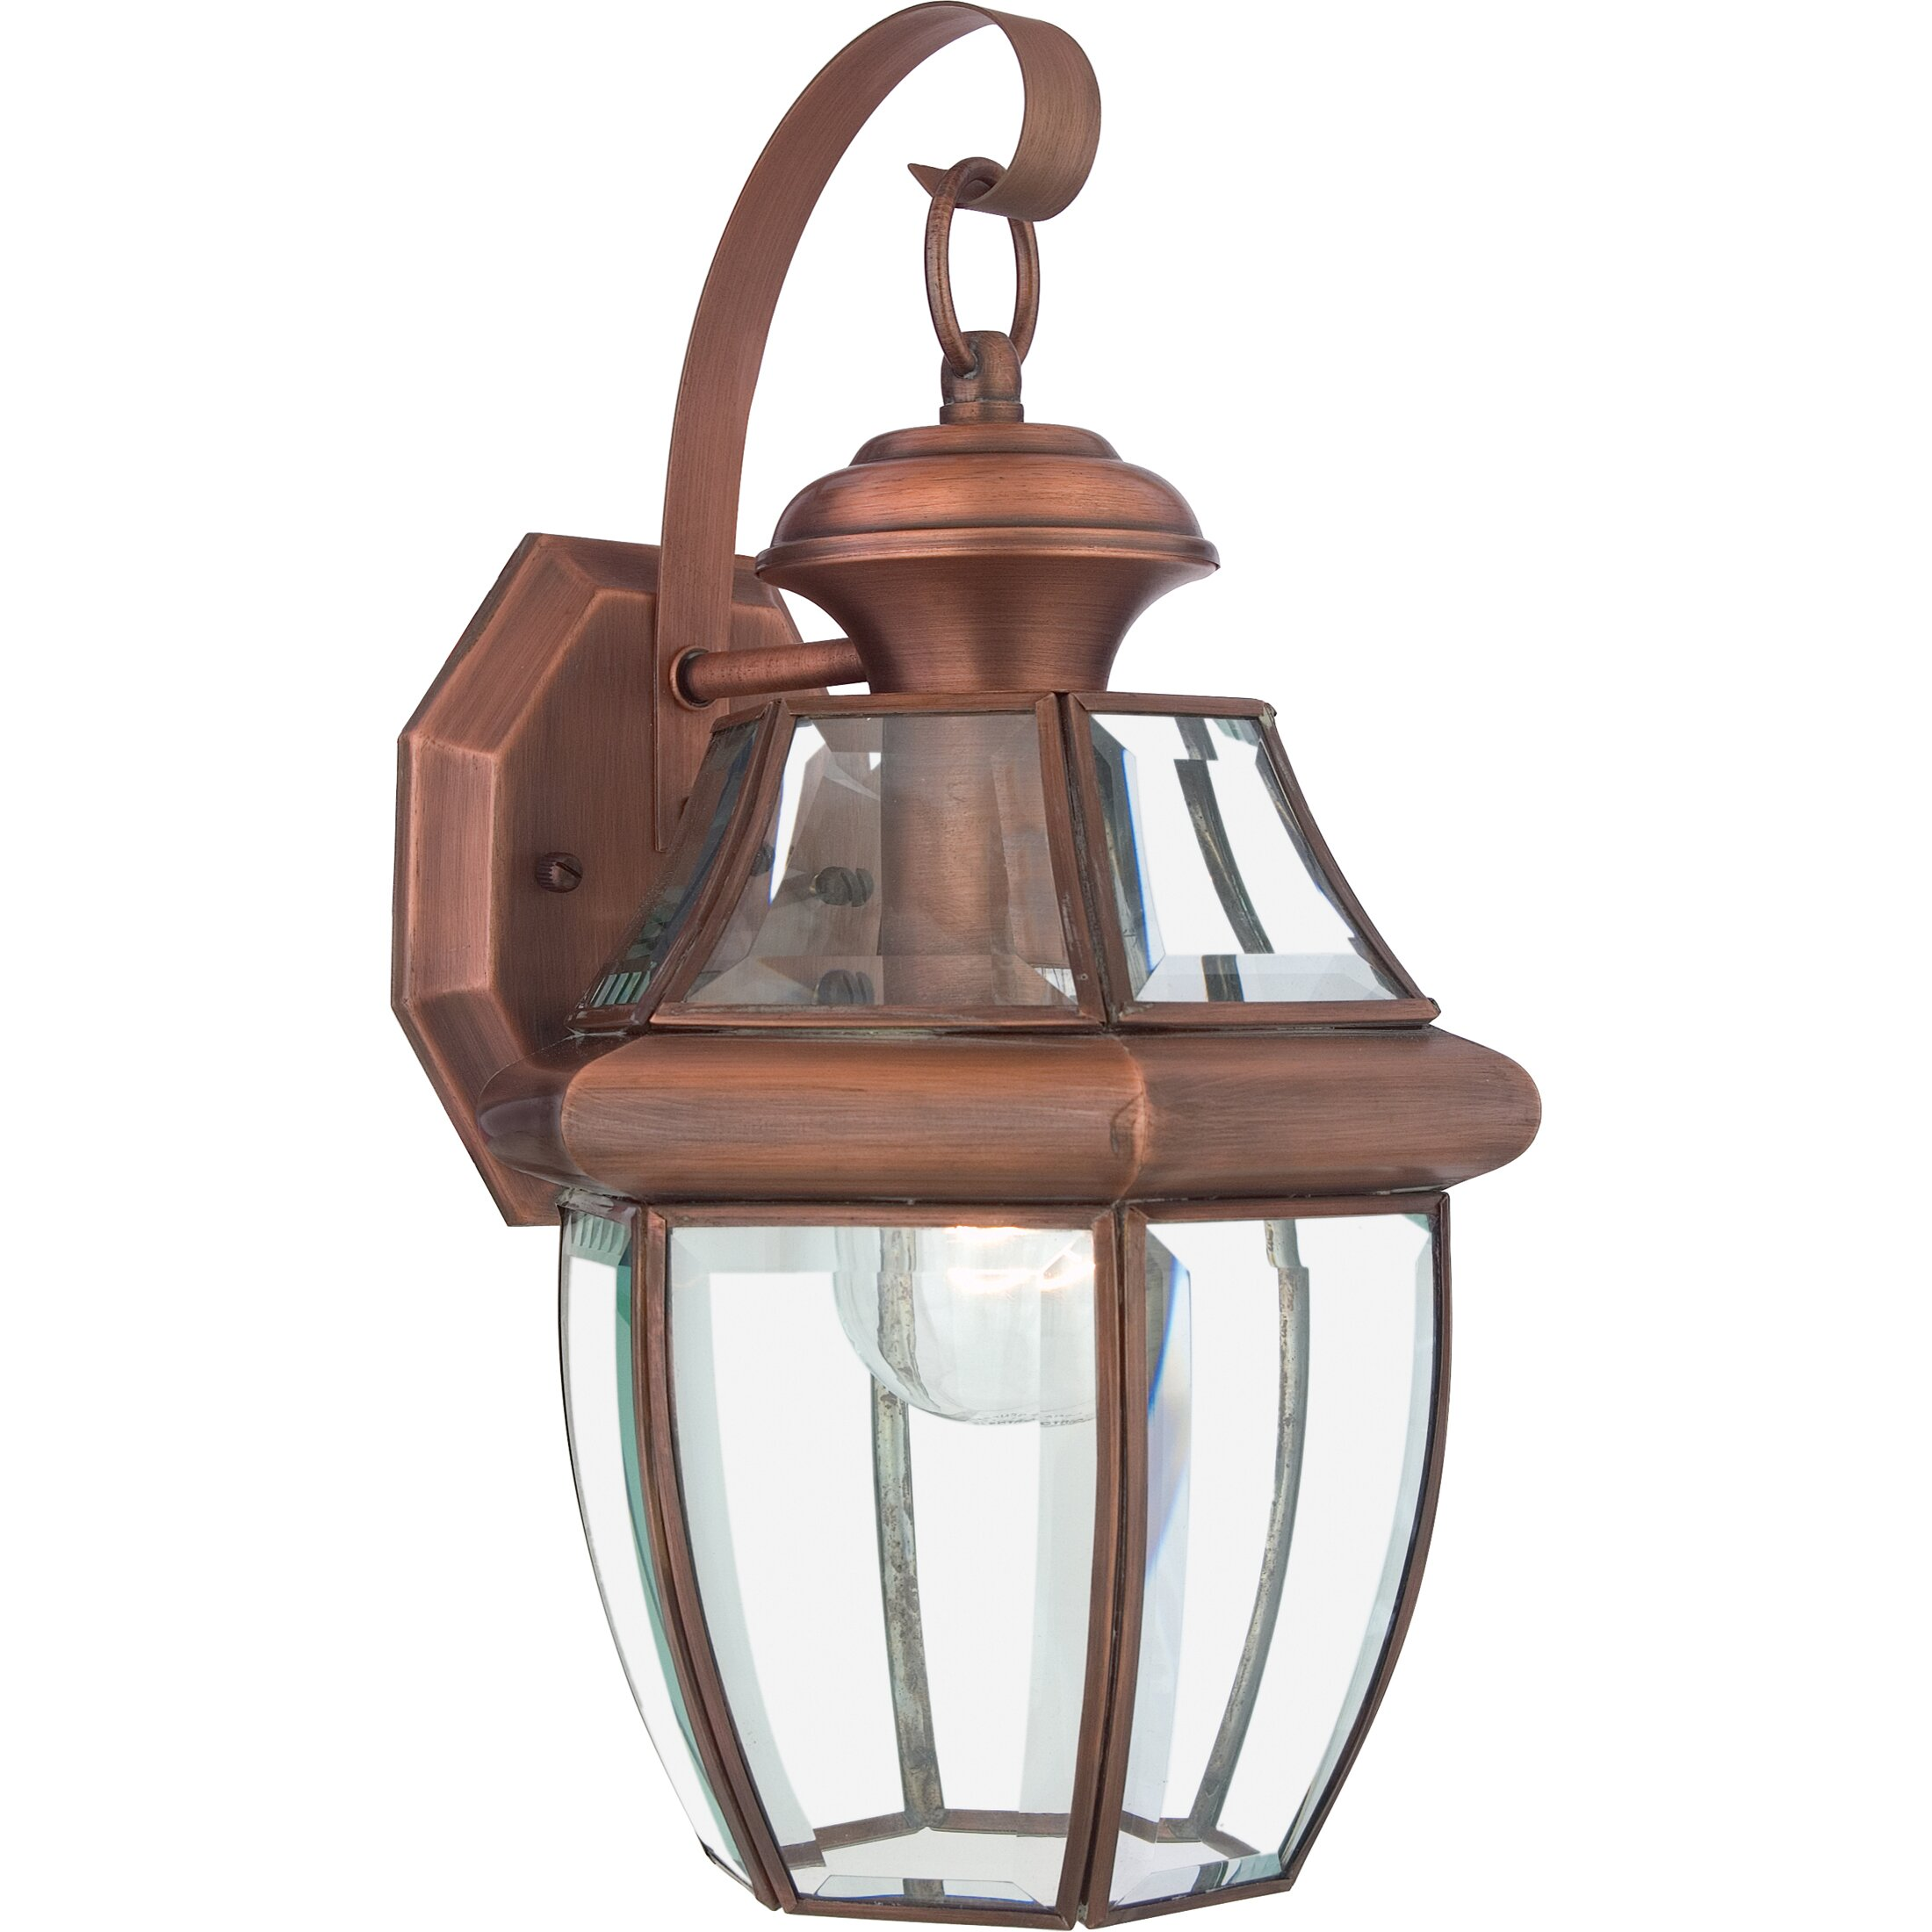 Wayfair Outdoor Wall Lights : Darby Home Co Saddler 1 Light Outdoor Wall Lantern & Reviews Wayfair